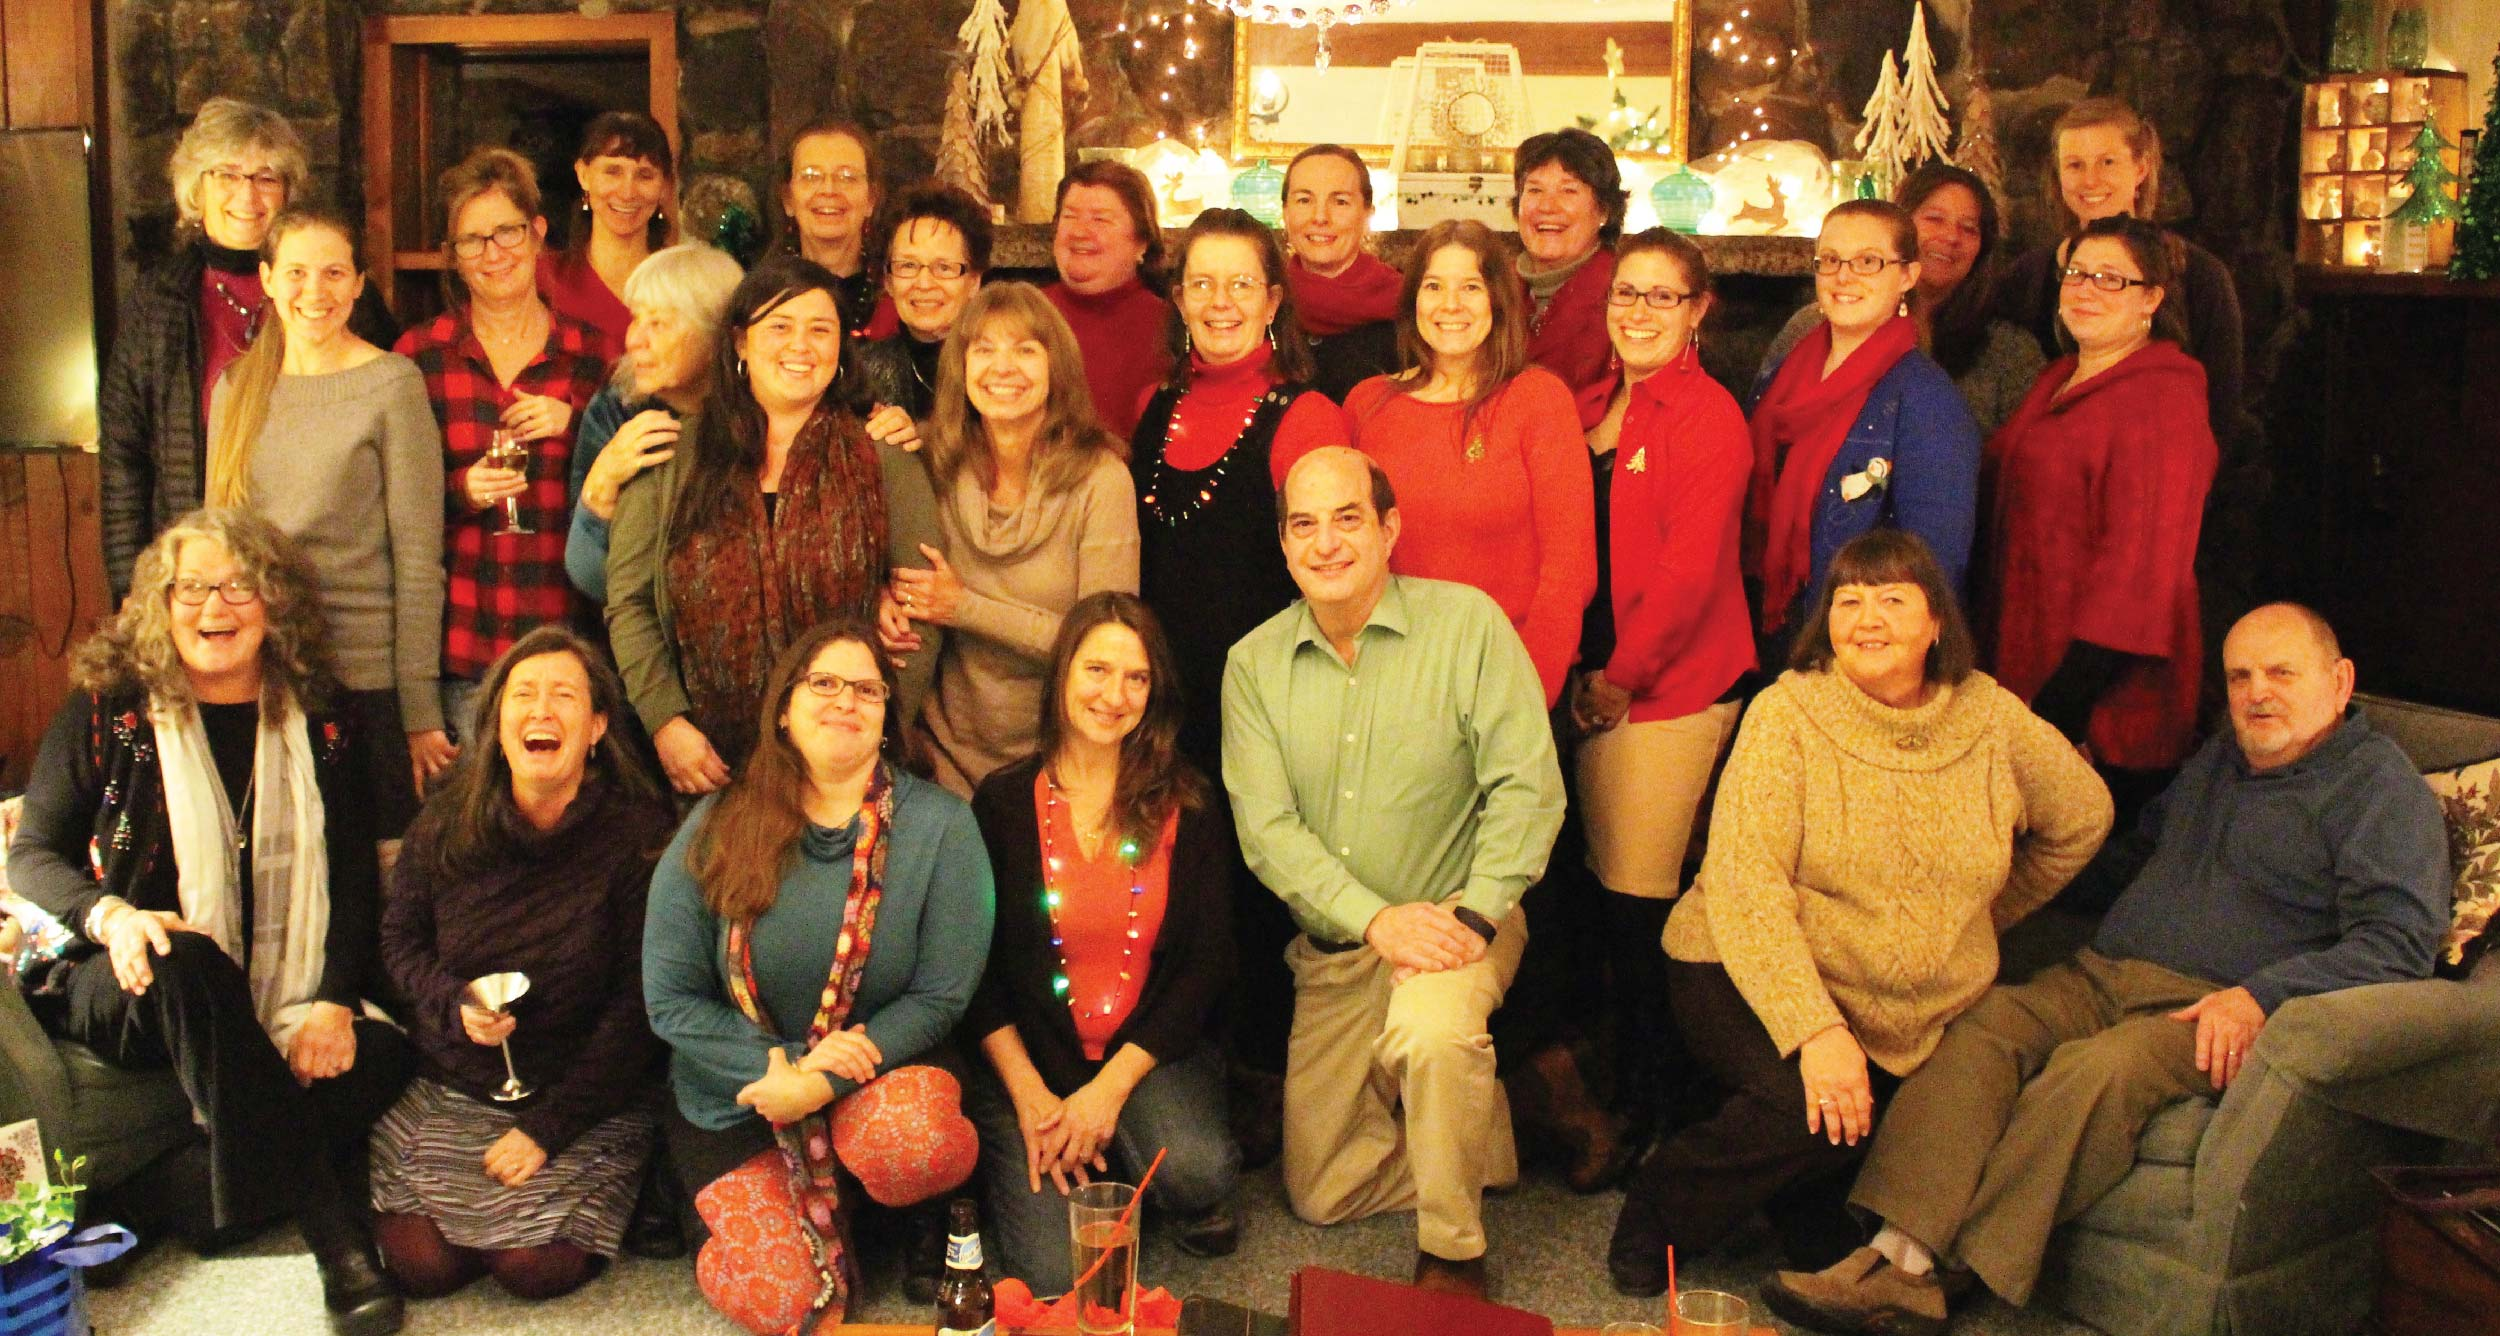 http://www.whitemountainhealth.org/uploads/images/content_pictures/Staff holiday photo 2016 medium.jpg